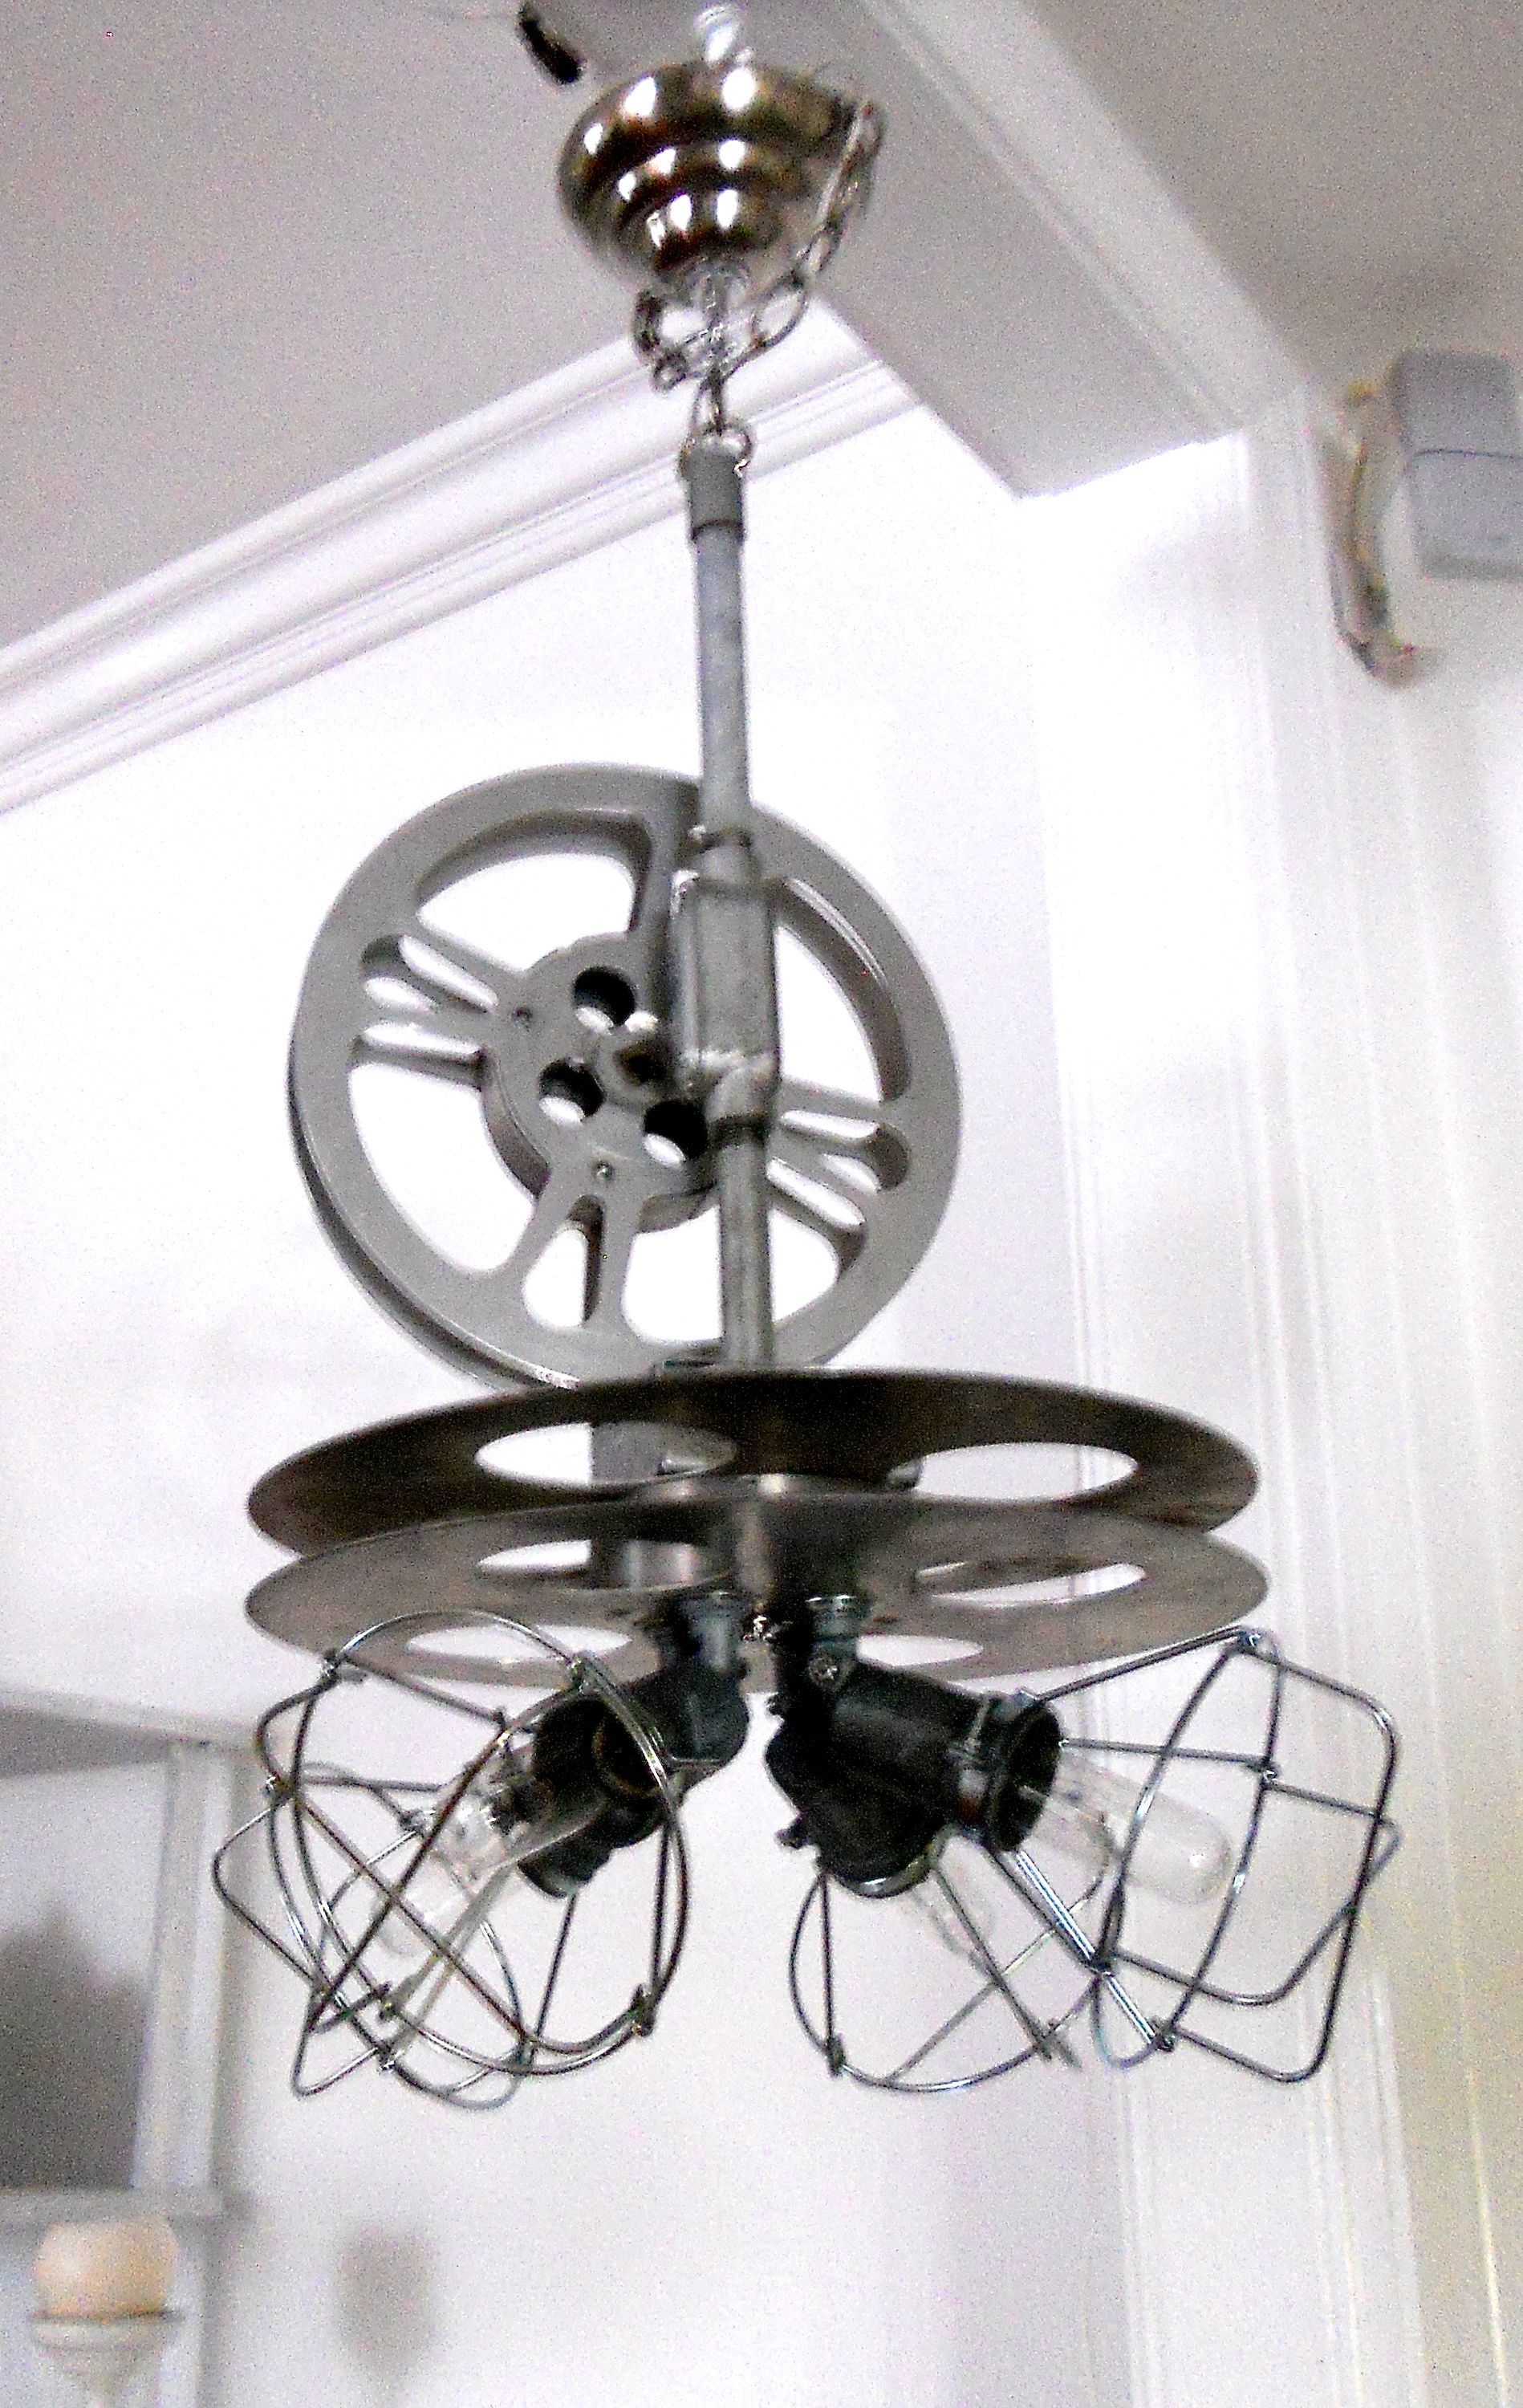 Reel and Pipes Chandelier Chandeliers